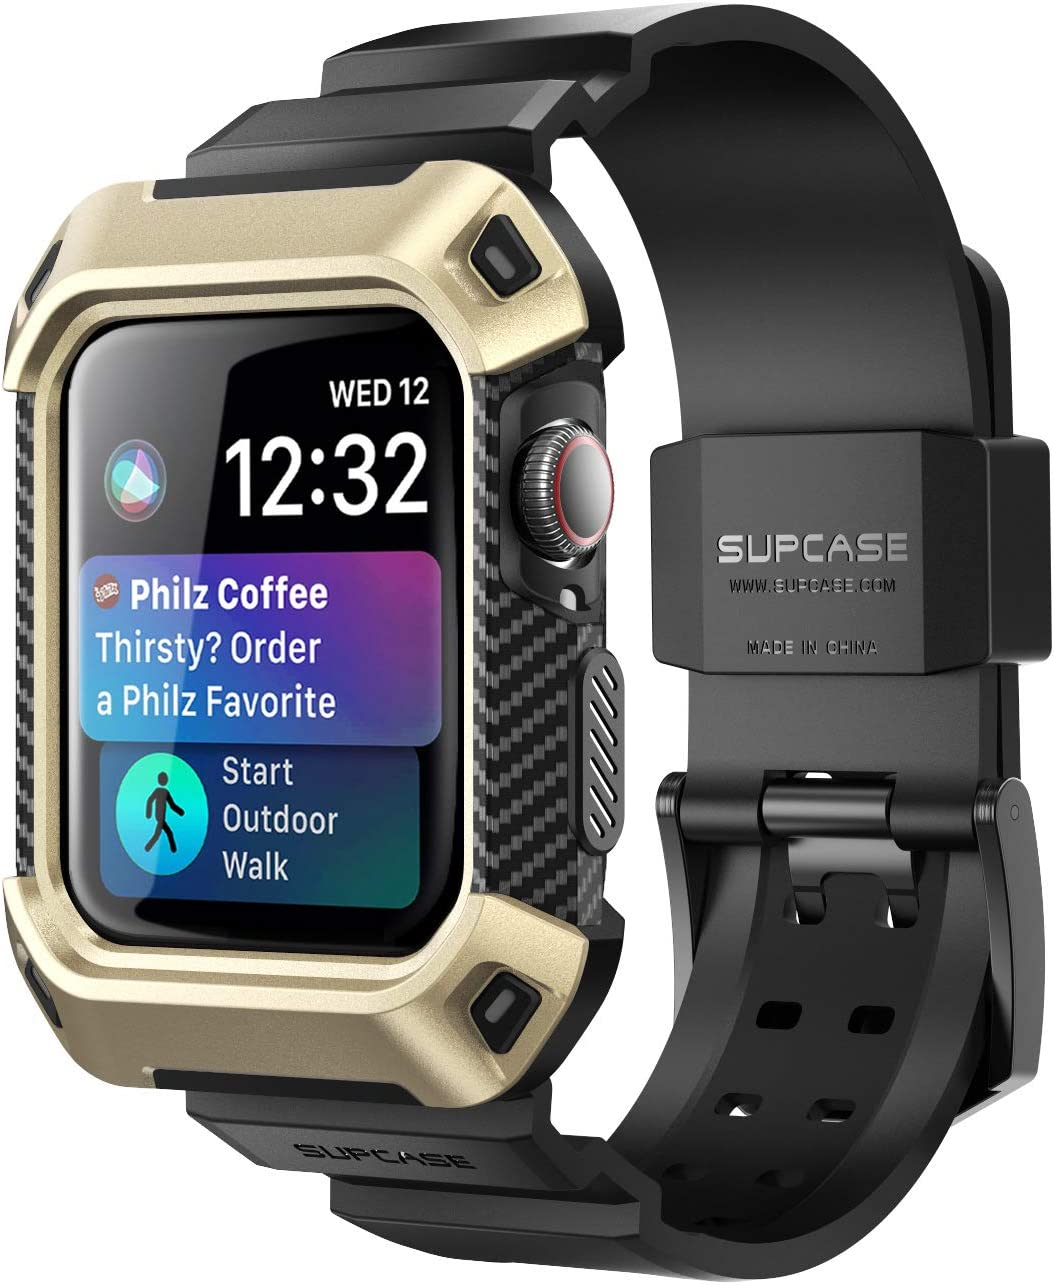 SUPCASE [Unicorn Beetle Pro] Designed for Apple Watch Series 6/SE/5/4 [44mm], Rugged Protective Case with Strap Bands(Gold)